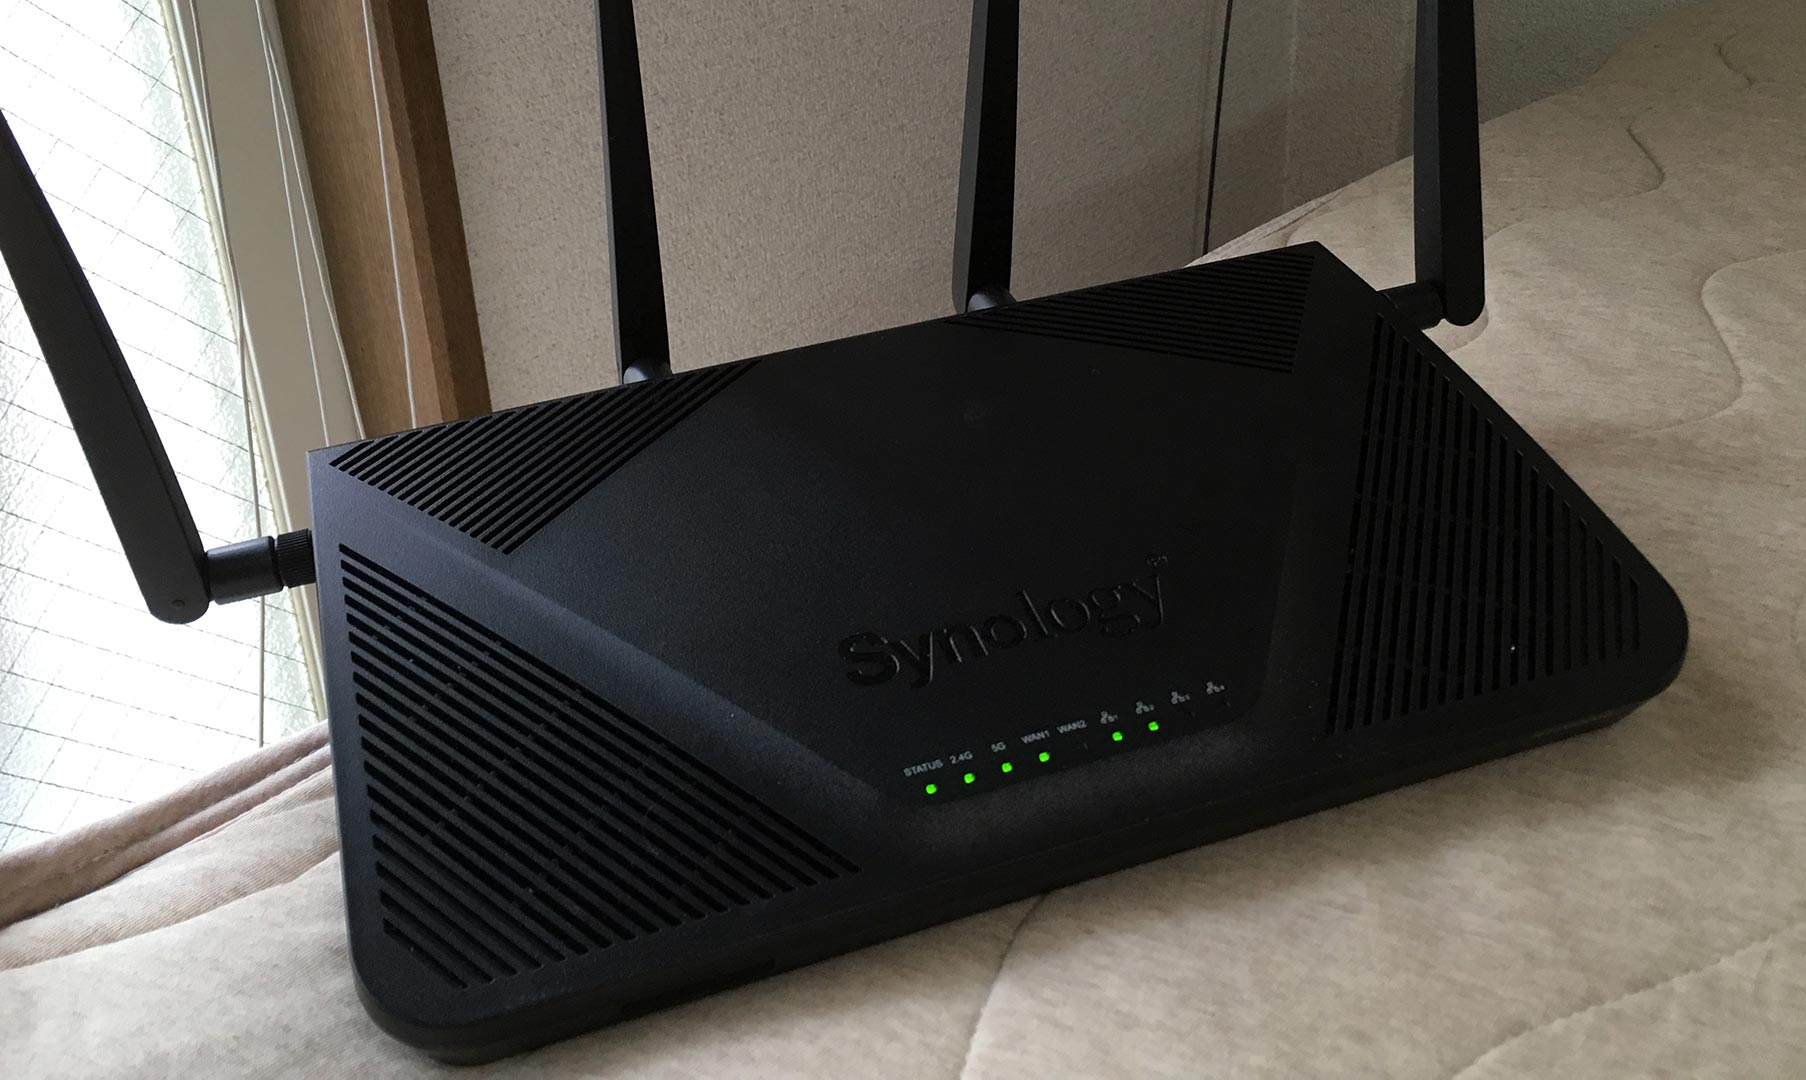 synology RT2600ac本体